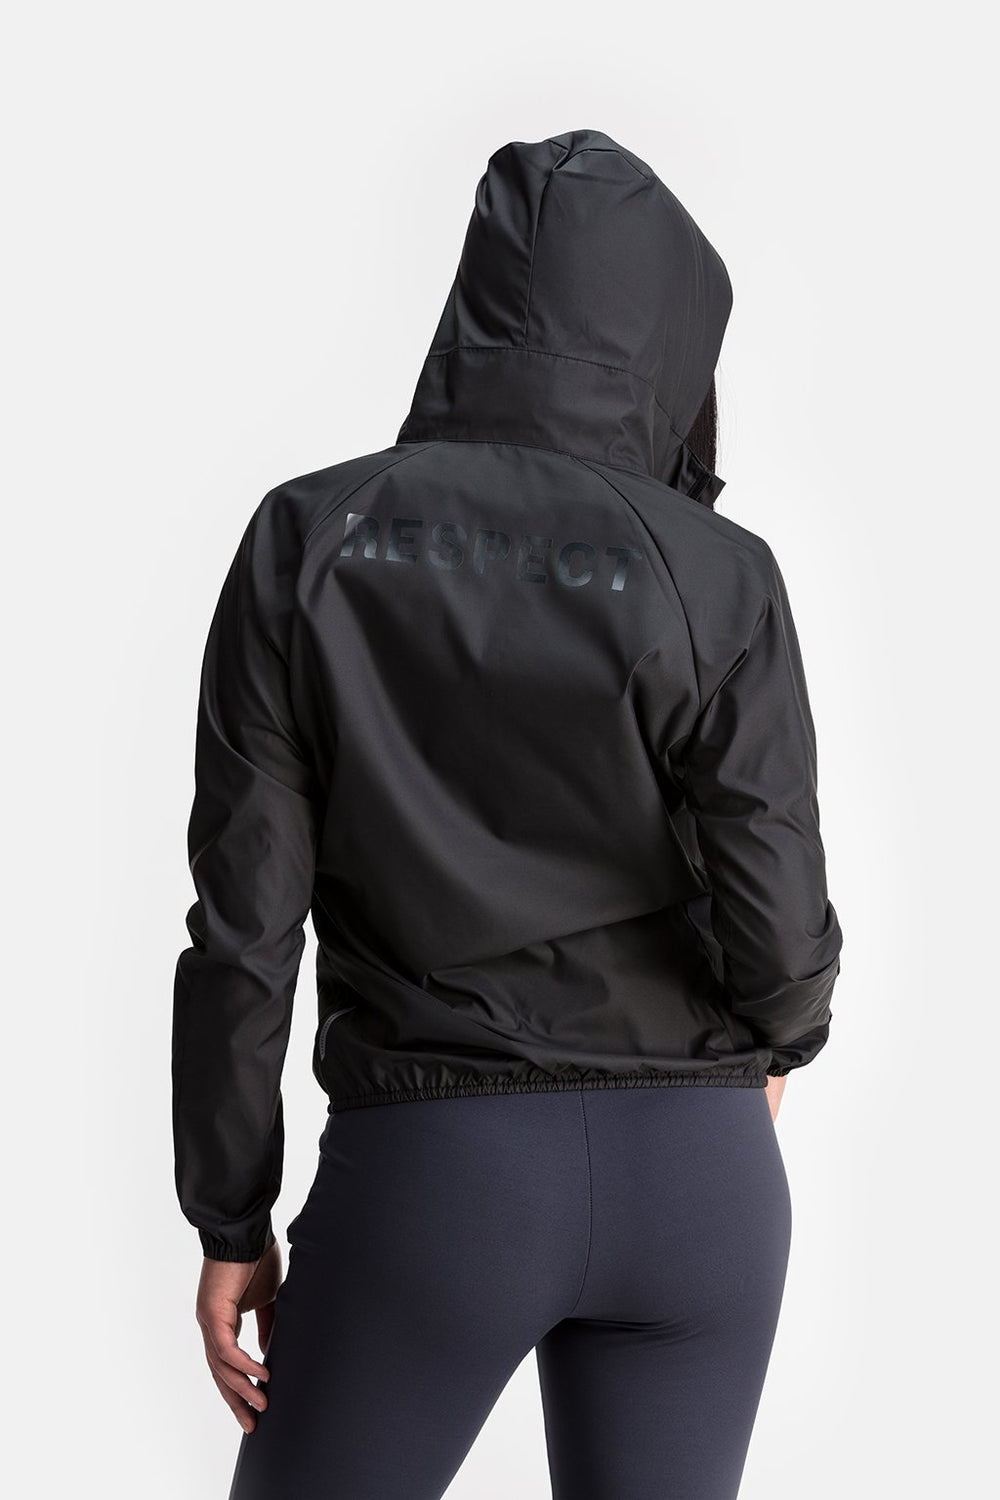 RYU Womens Wind Shell Jacket in Black / Back Print